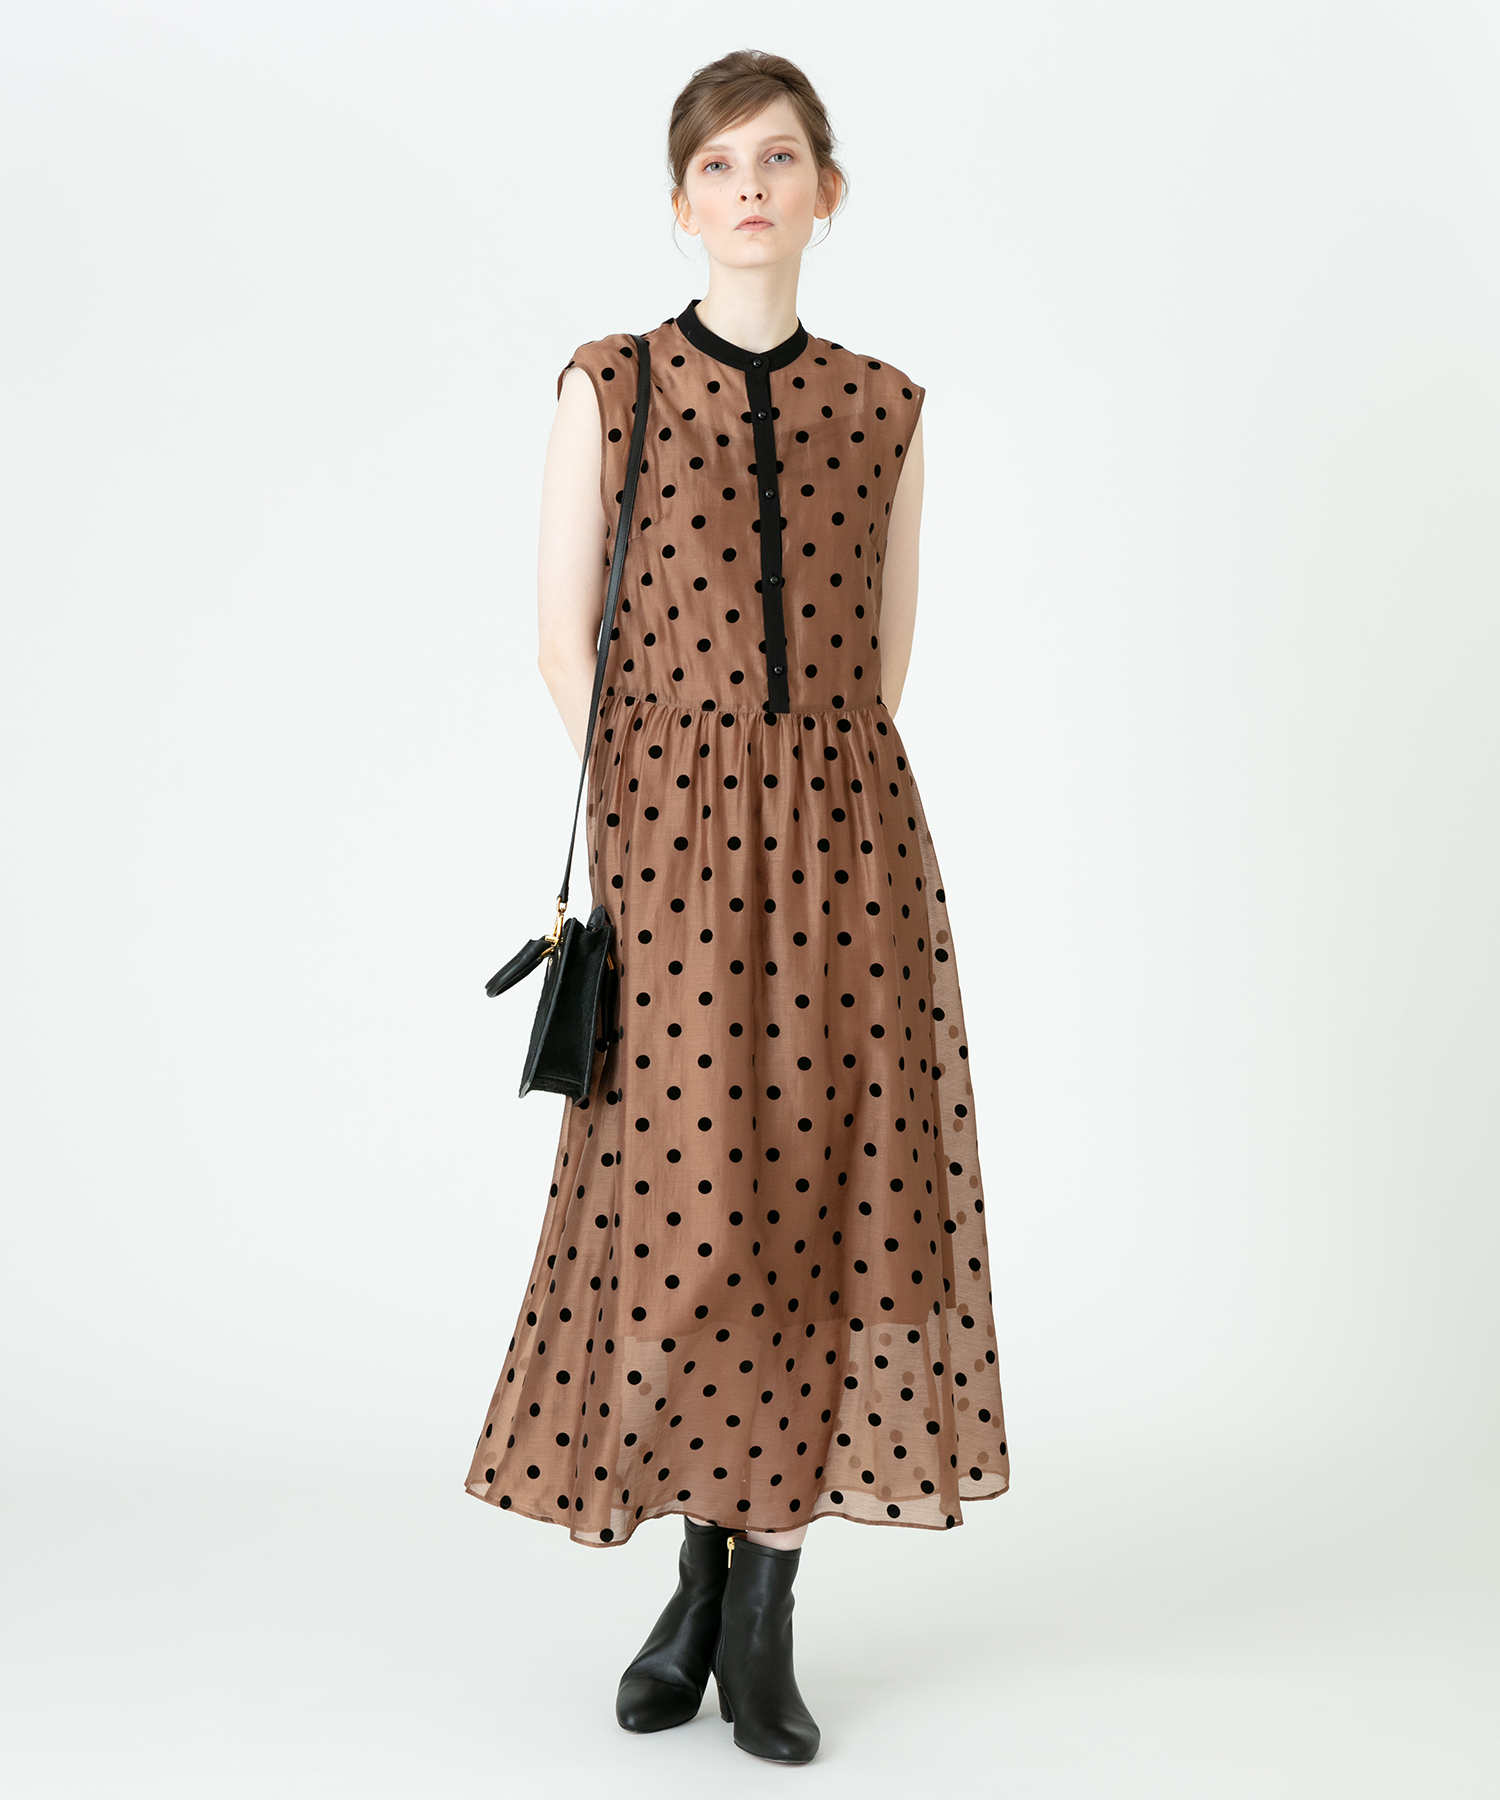 【LOULOU WILLOUGHBY】フロッキードットワンピース